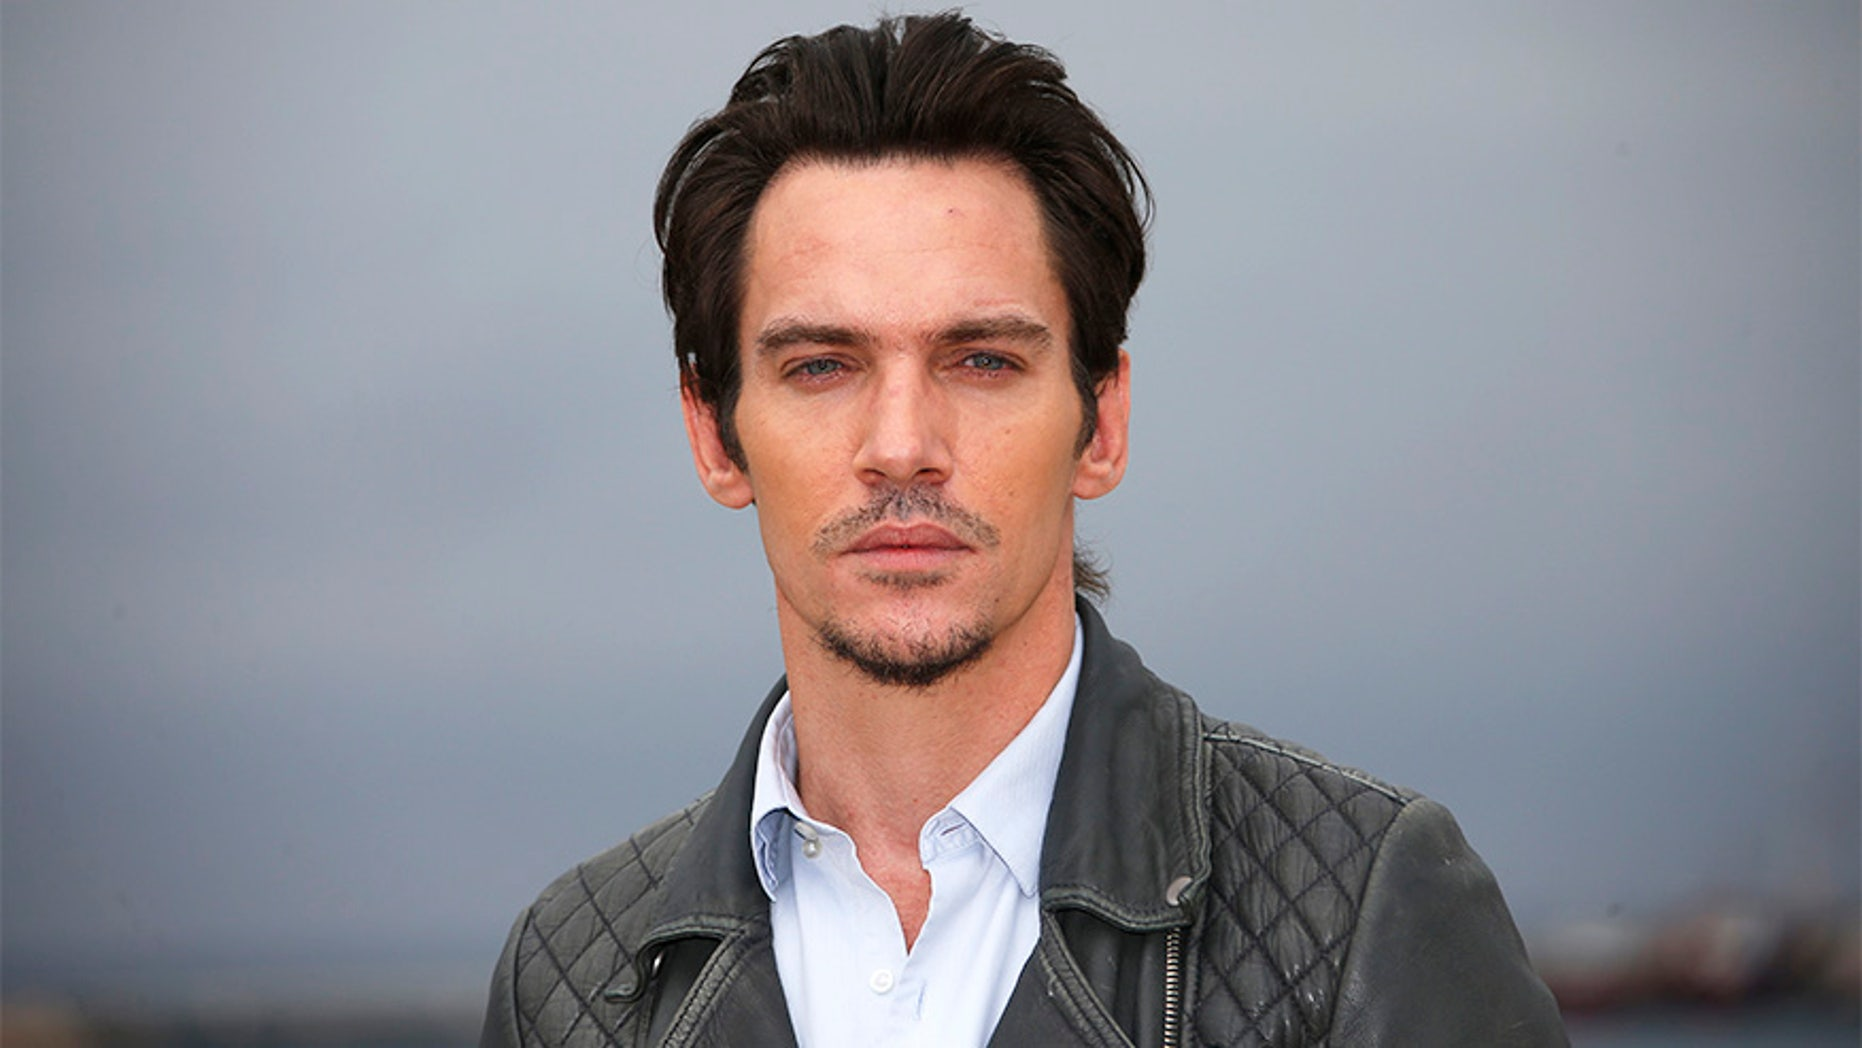 Actor Jonathan Rhys Meyers poses during a photocall at the MIPTV, the International Television Programs Market, in Cannes, France, April 4, 2016. REUTERS/Eric Gaillard - D1AESWMBMJAA